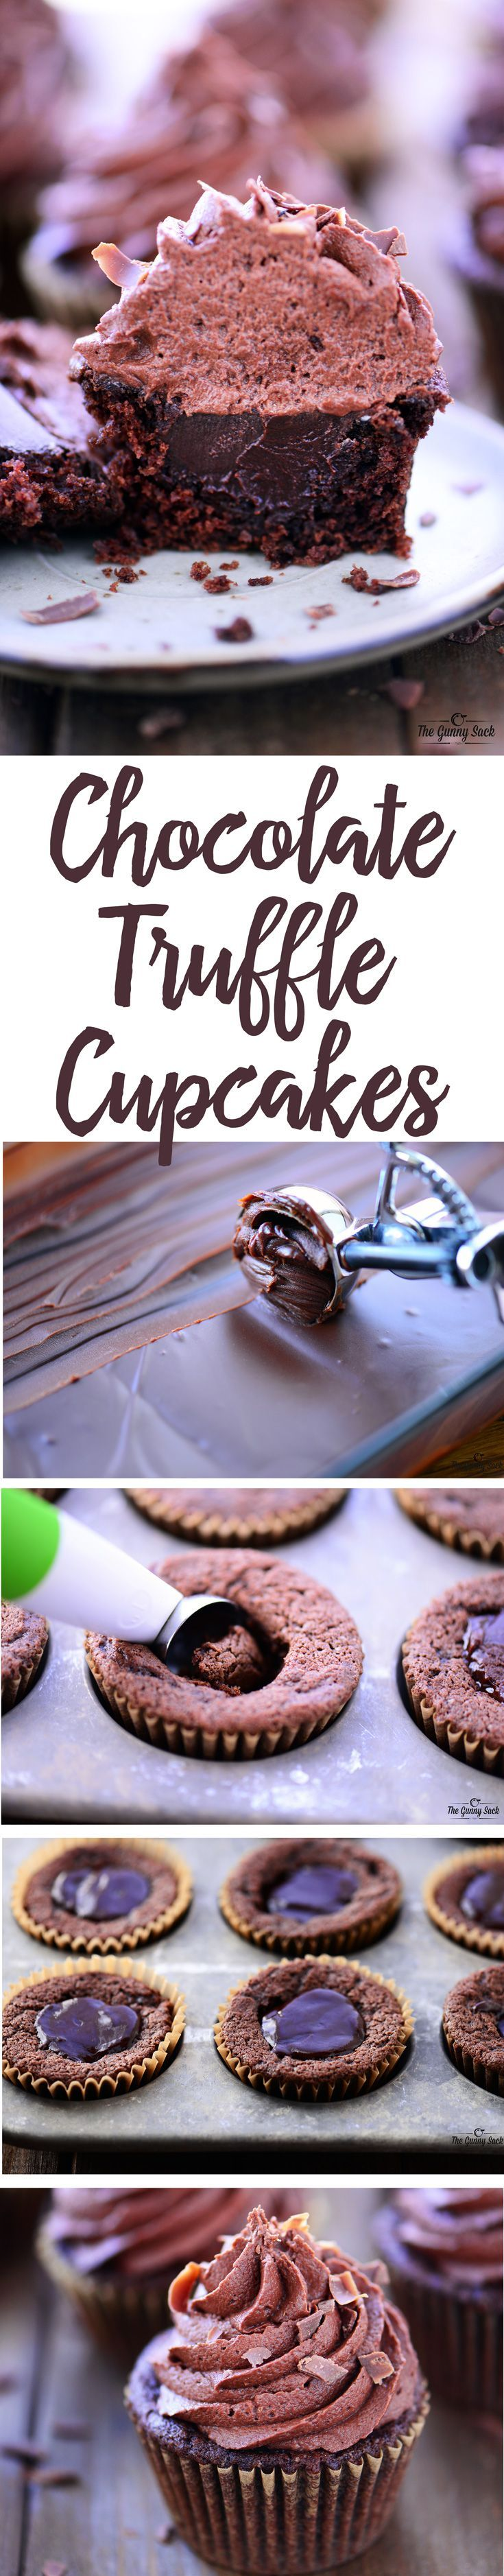 Chocolate Truffle Cupcakes Recipe   Moist chocolate cupcake with a chocolate truffle stuffed in the middle and chocolate buttercream frosting on top!